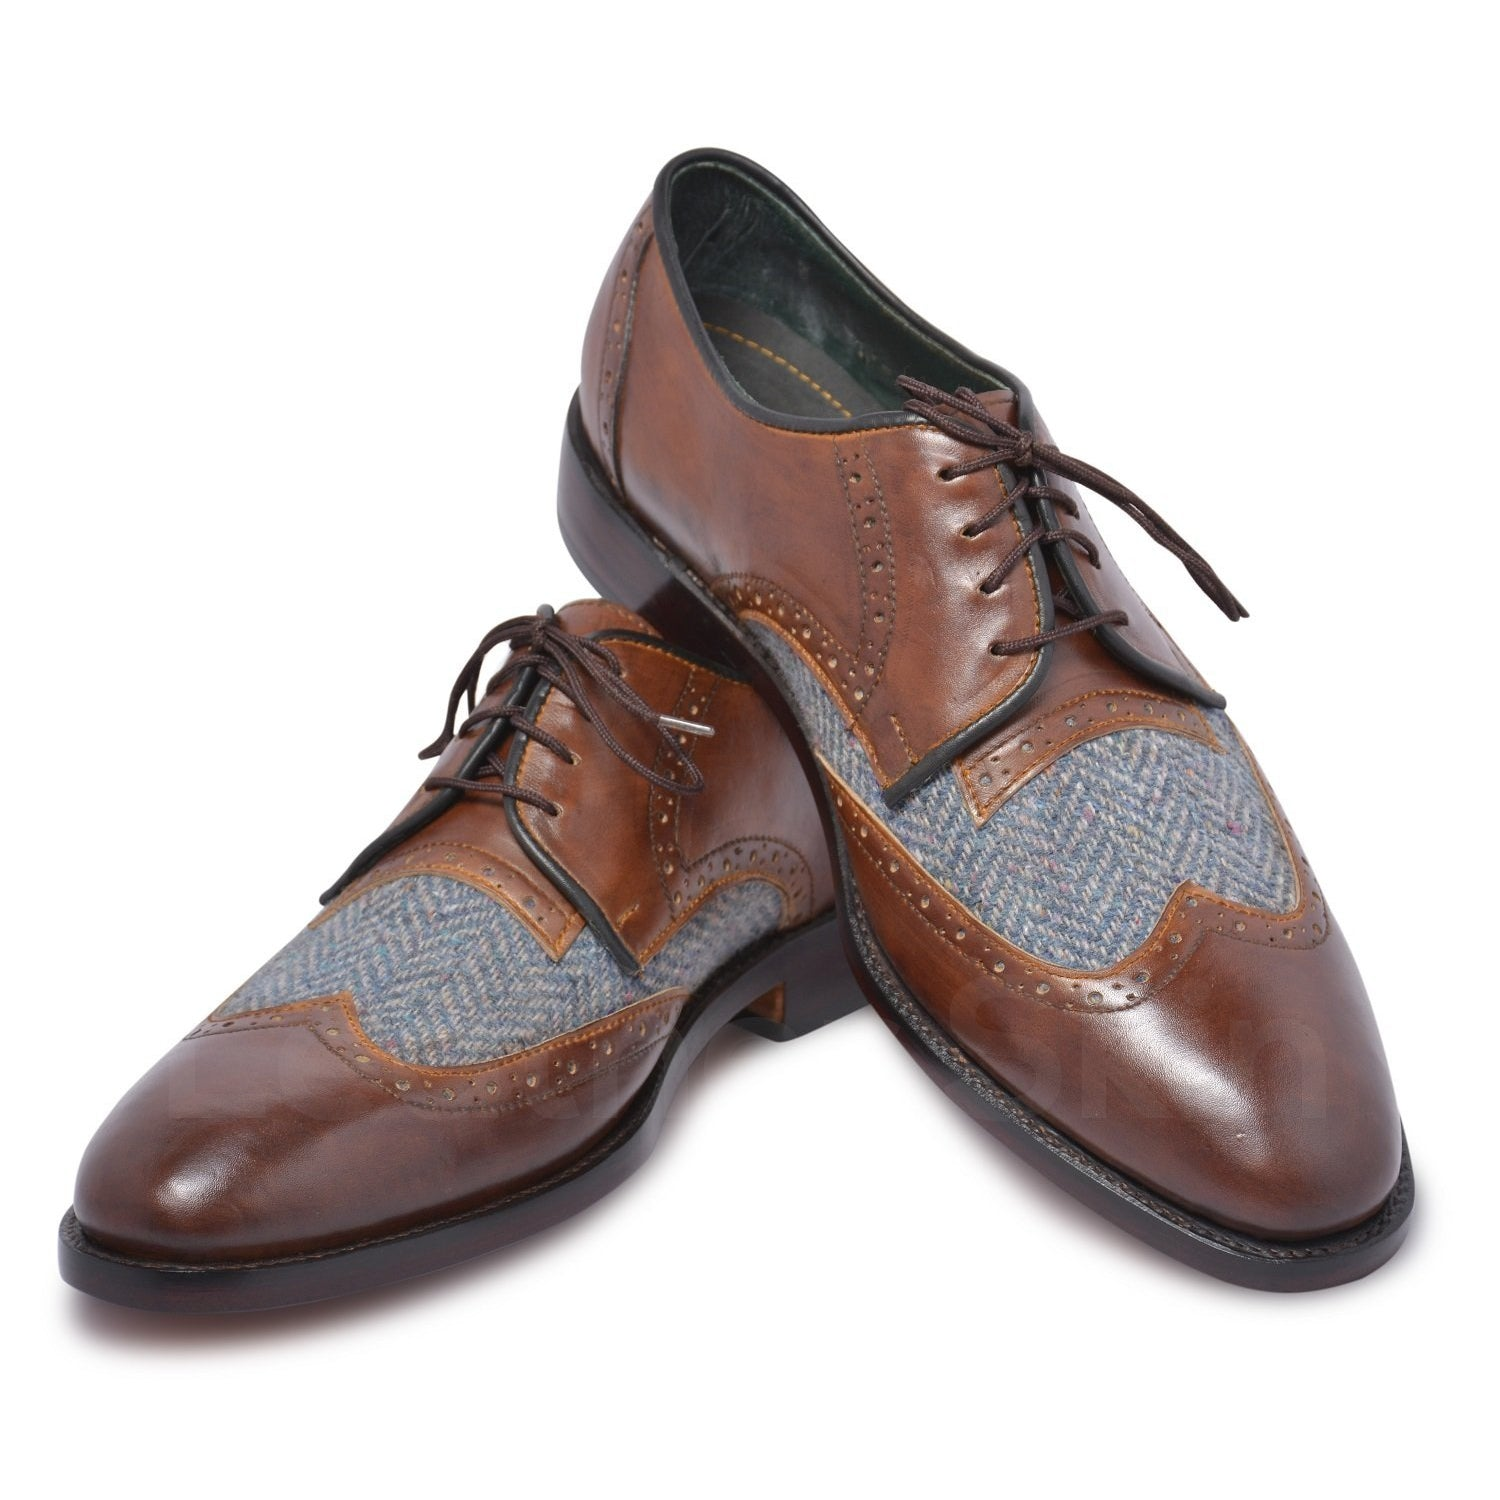 brown mens leather shoes with Herringbone